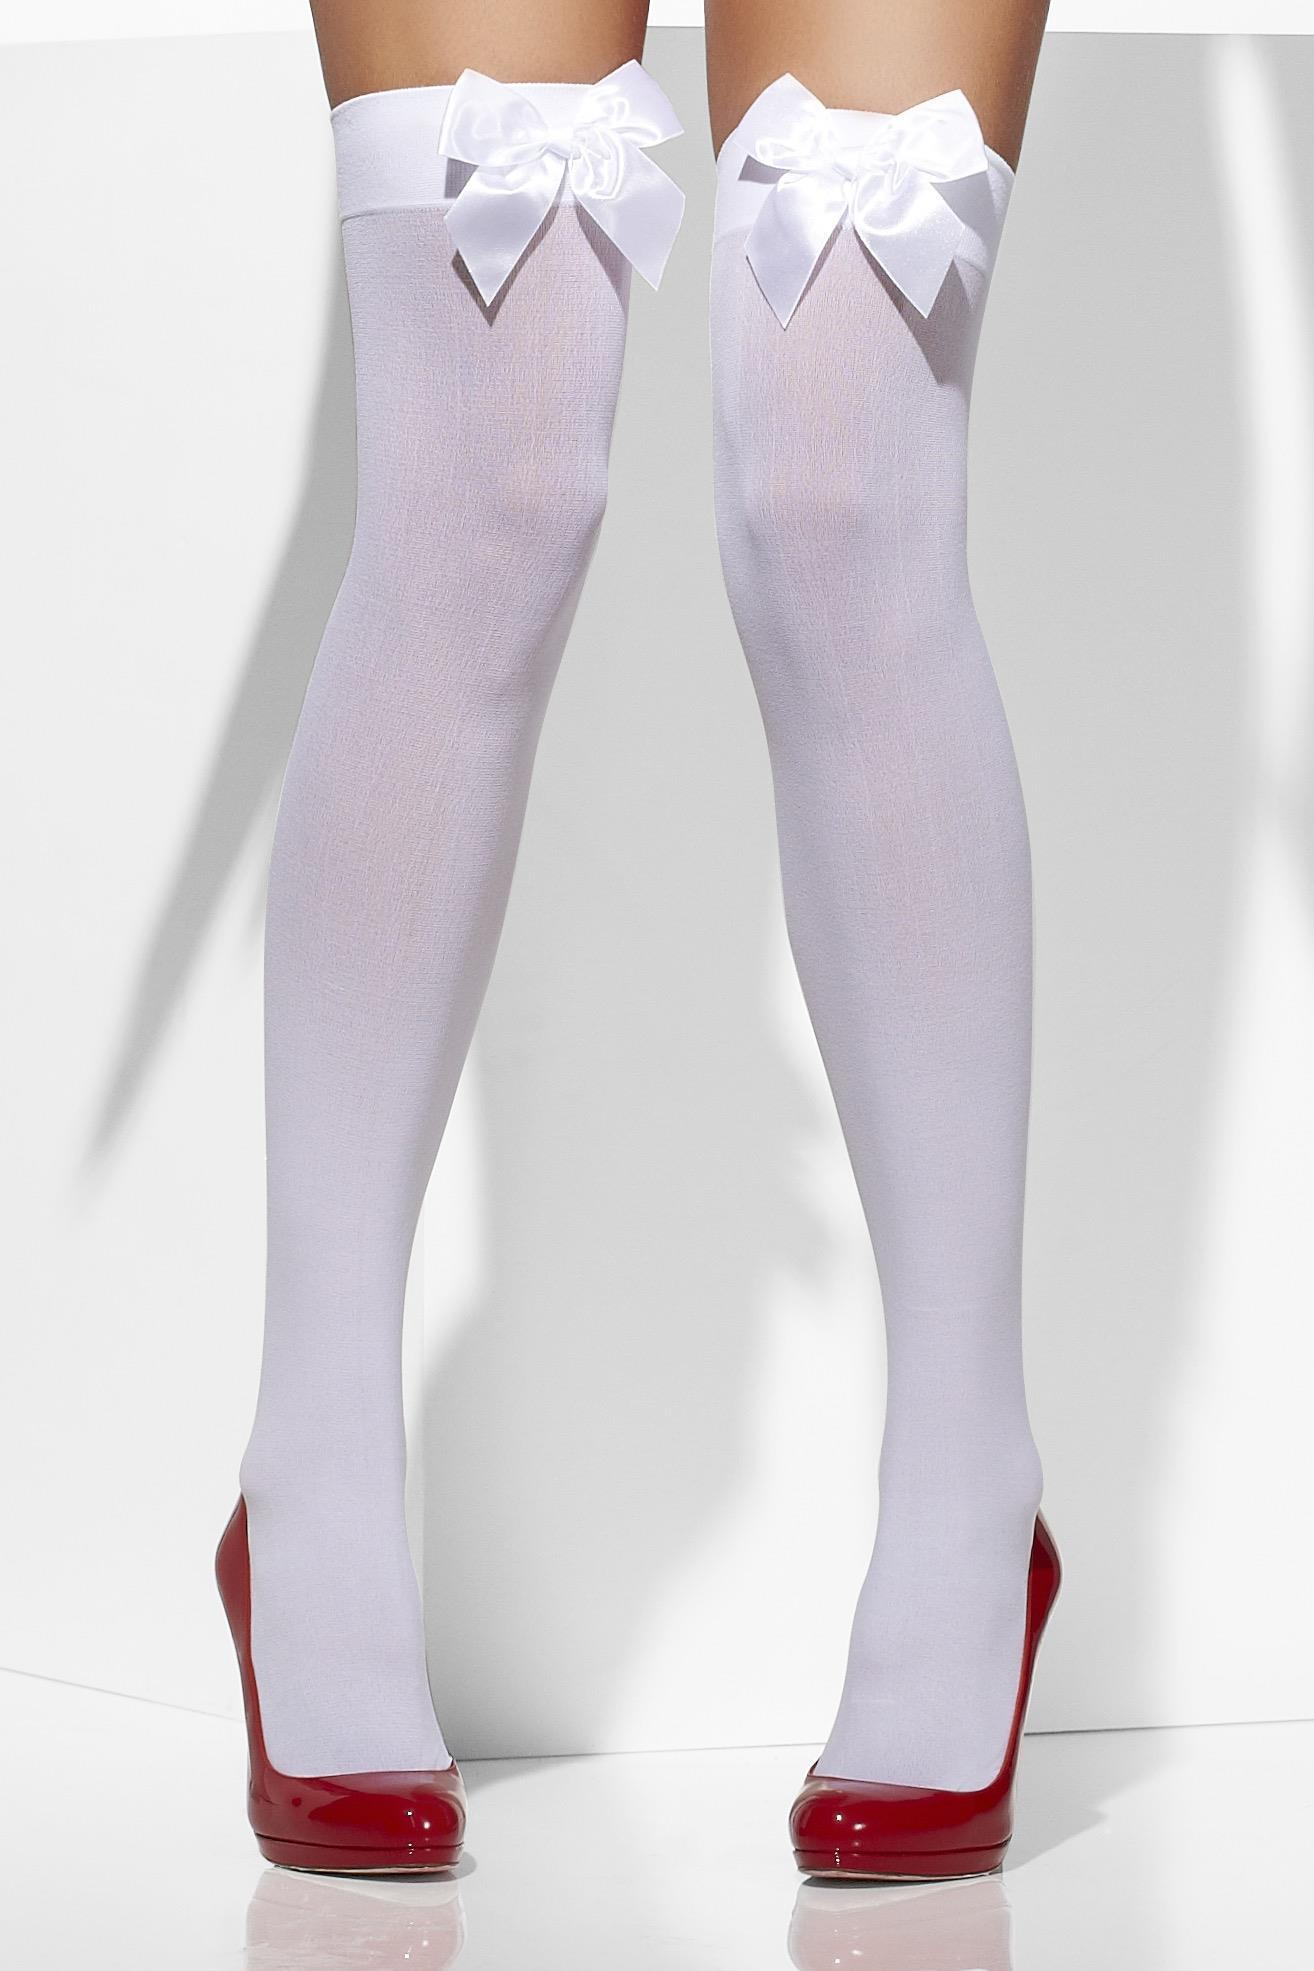 Opaque Hold-Ups Black with White Bows